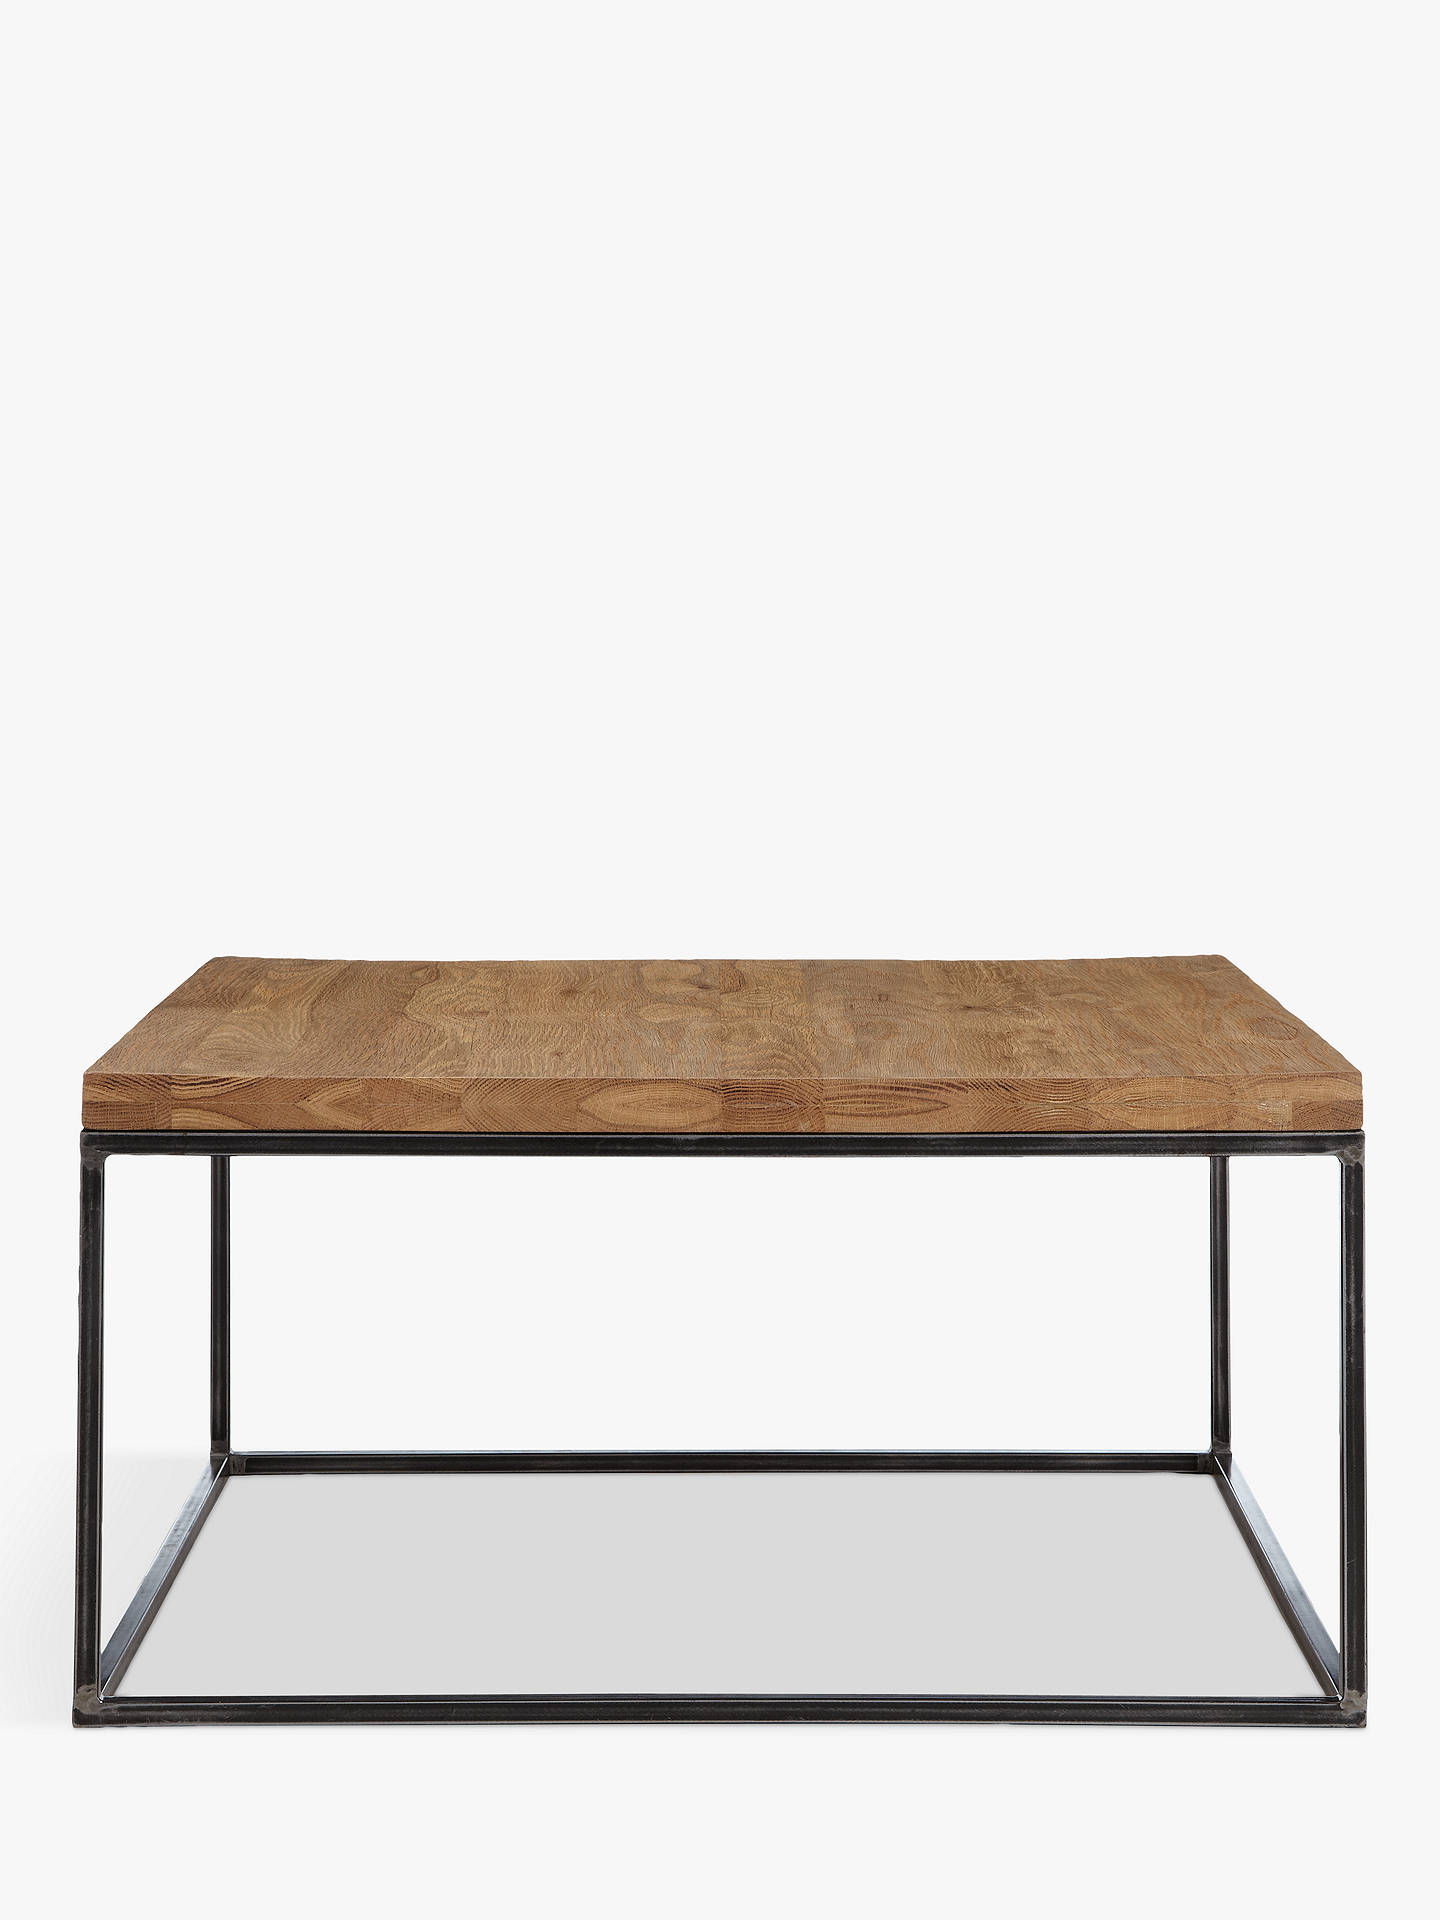 BuyJohn Lewis & Partners Calia Coffee Table, Oak Online at johnlewis.com